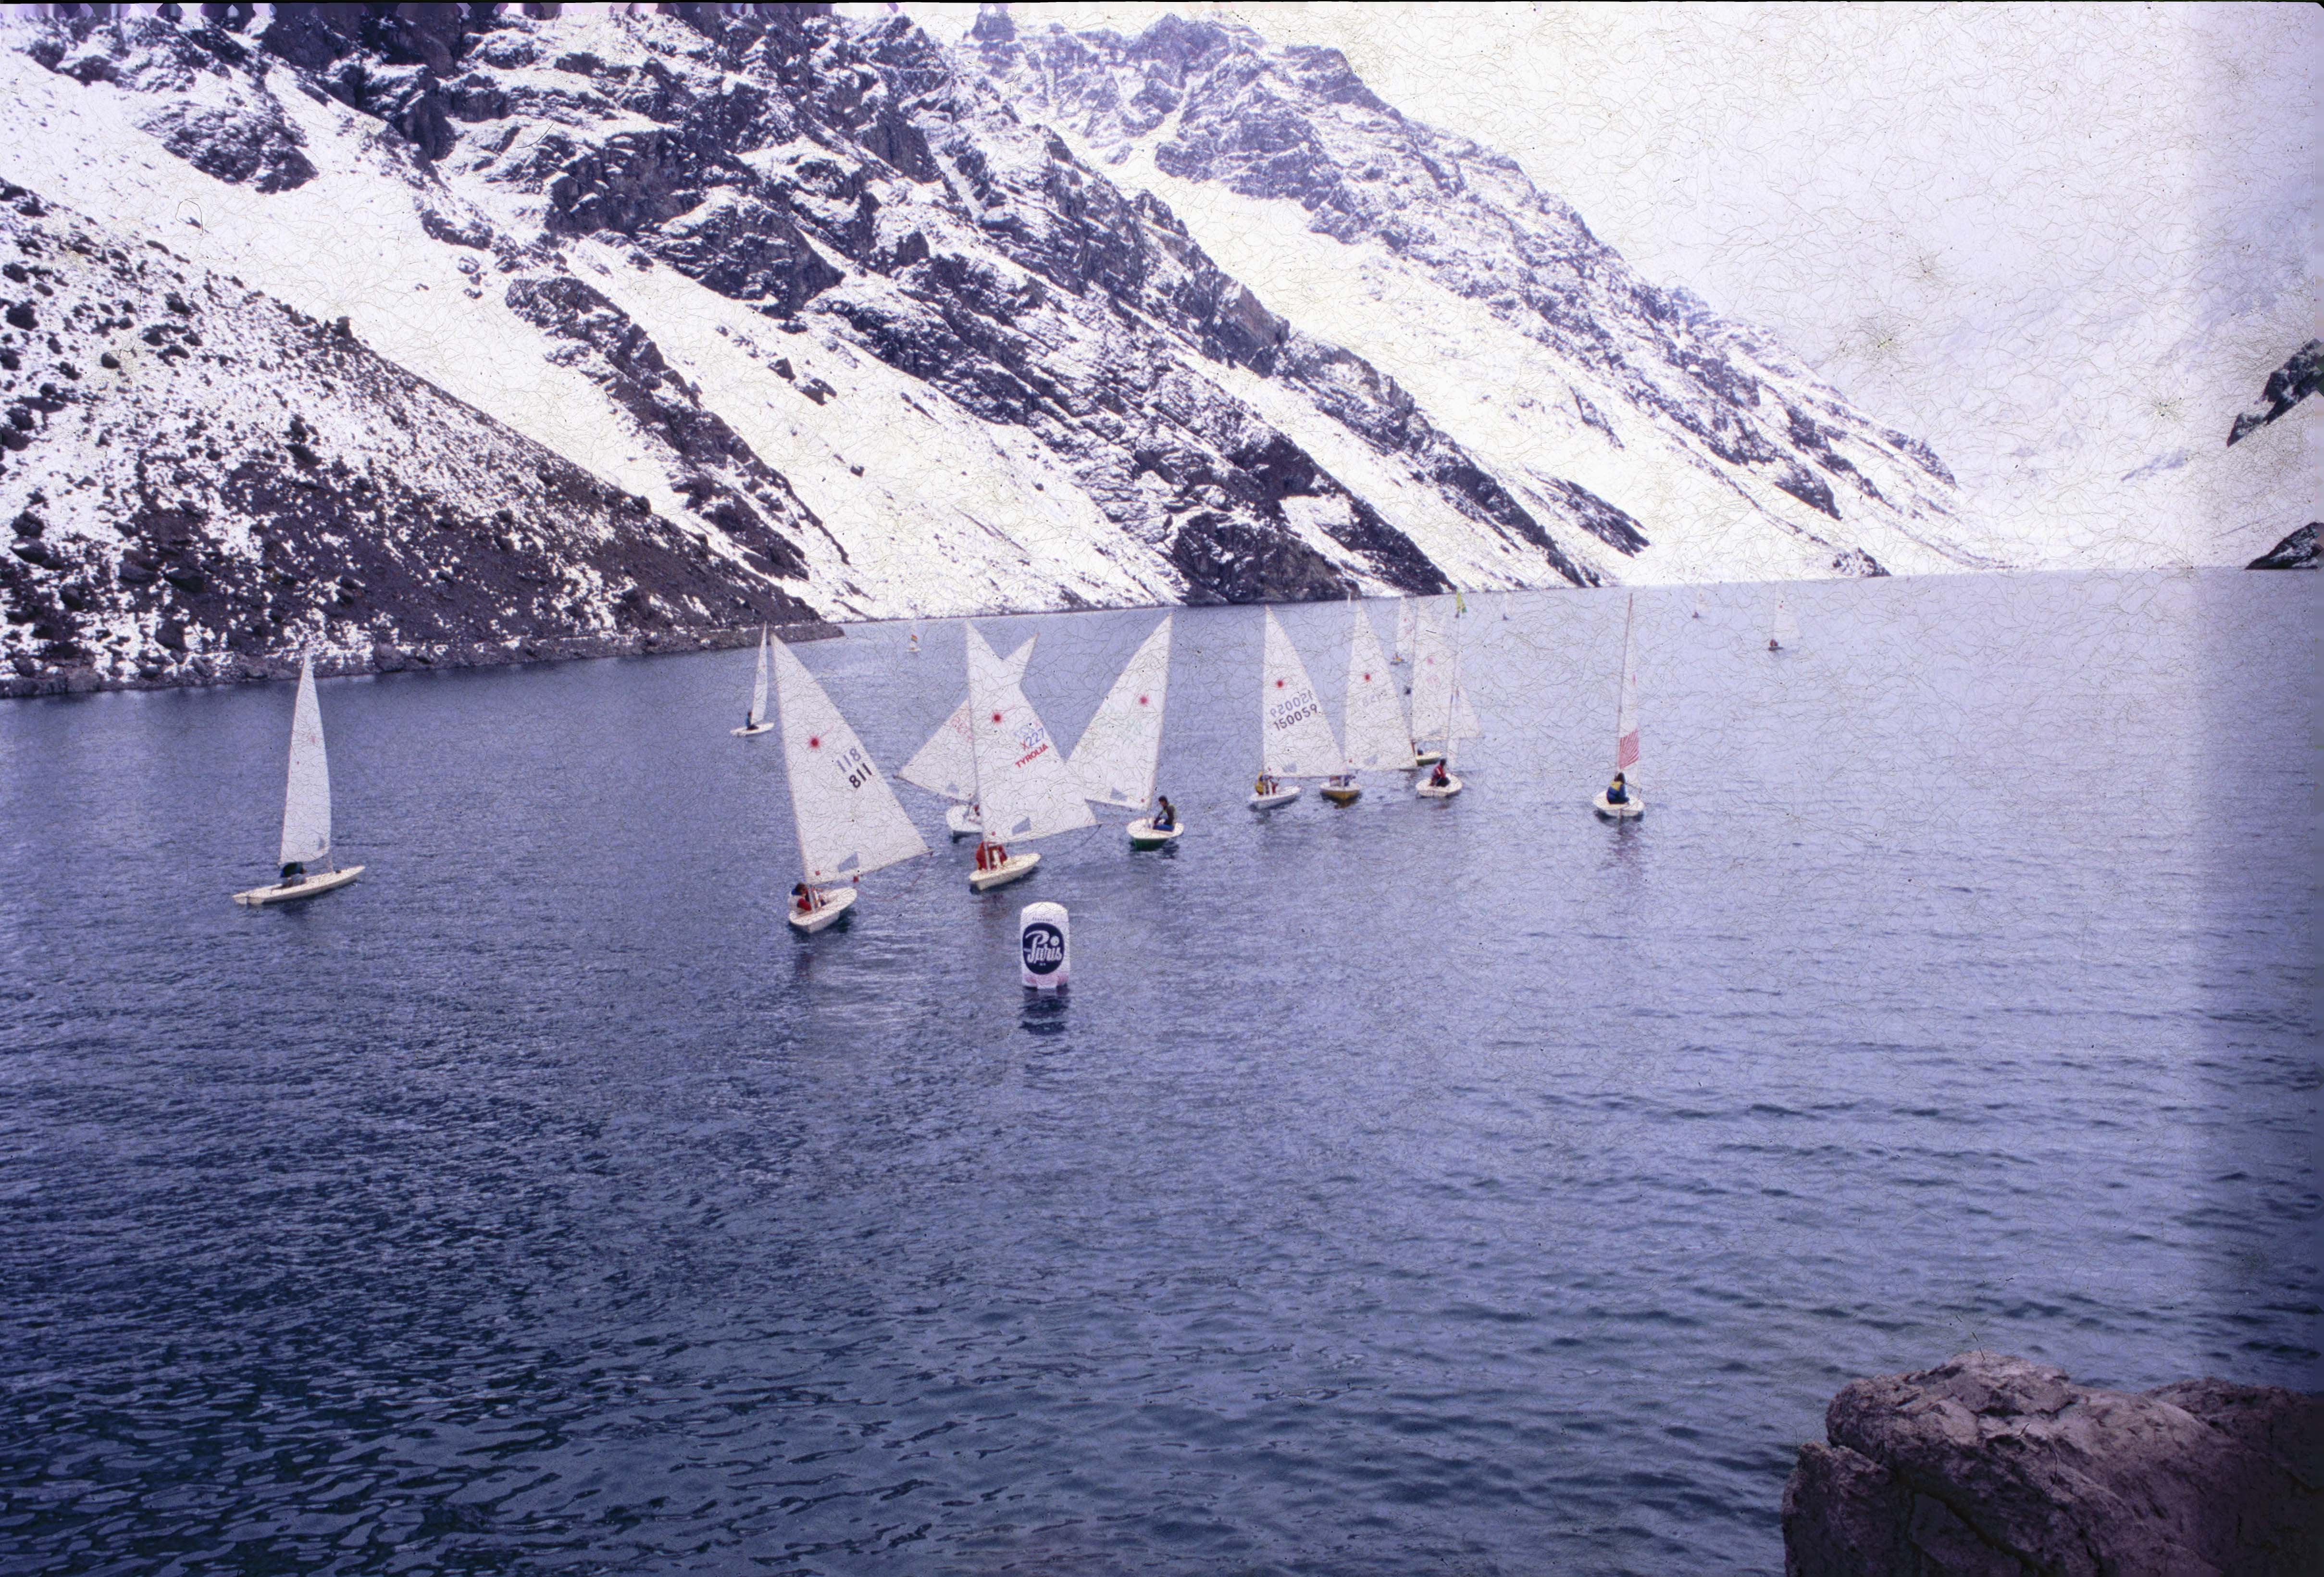 Enterreno - Fotos históricas de chile - fotos antiguas de Chile - Regata Laguna del Inca en 1991